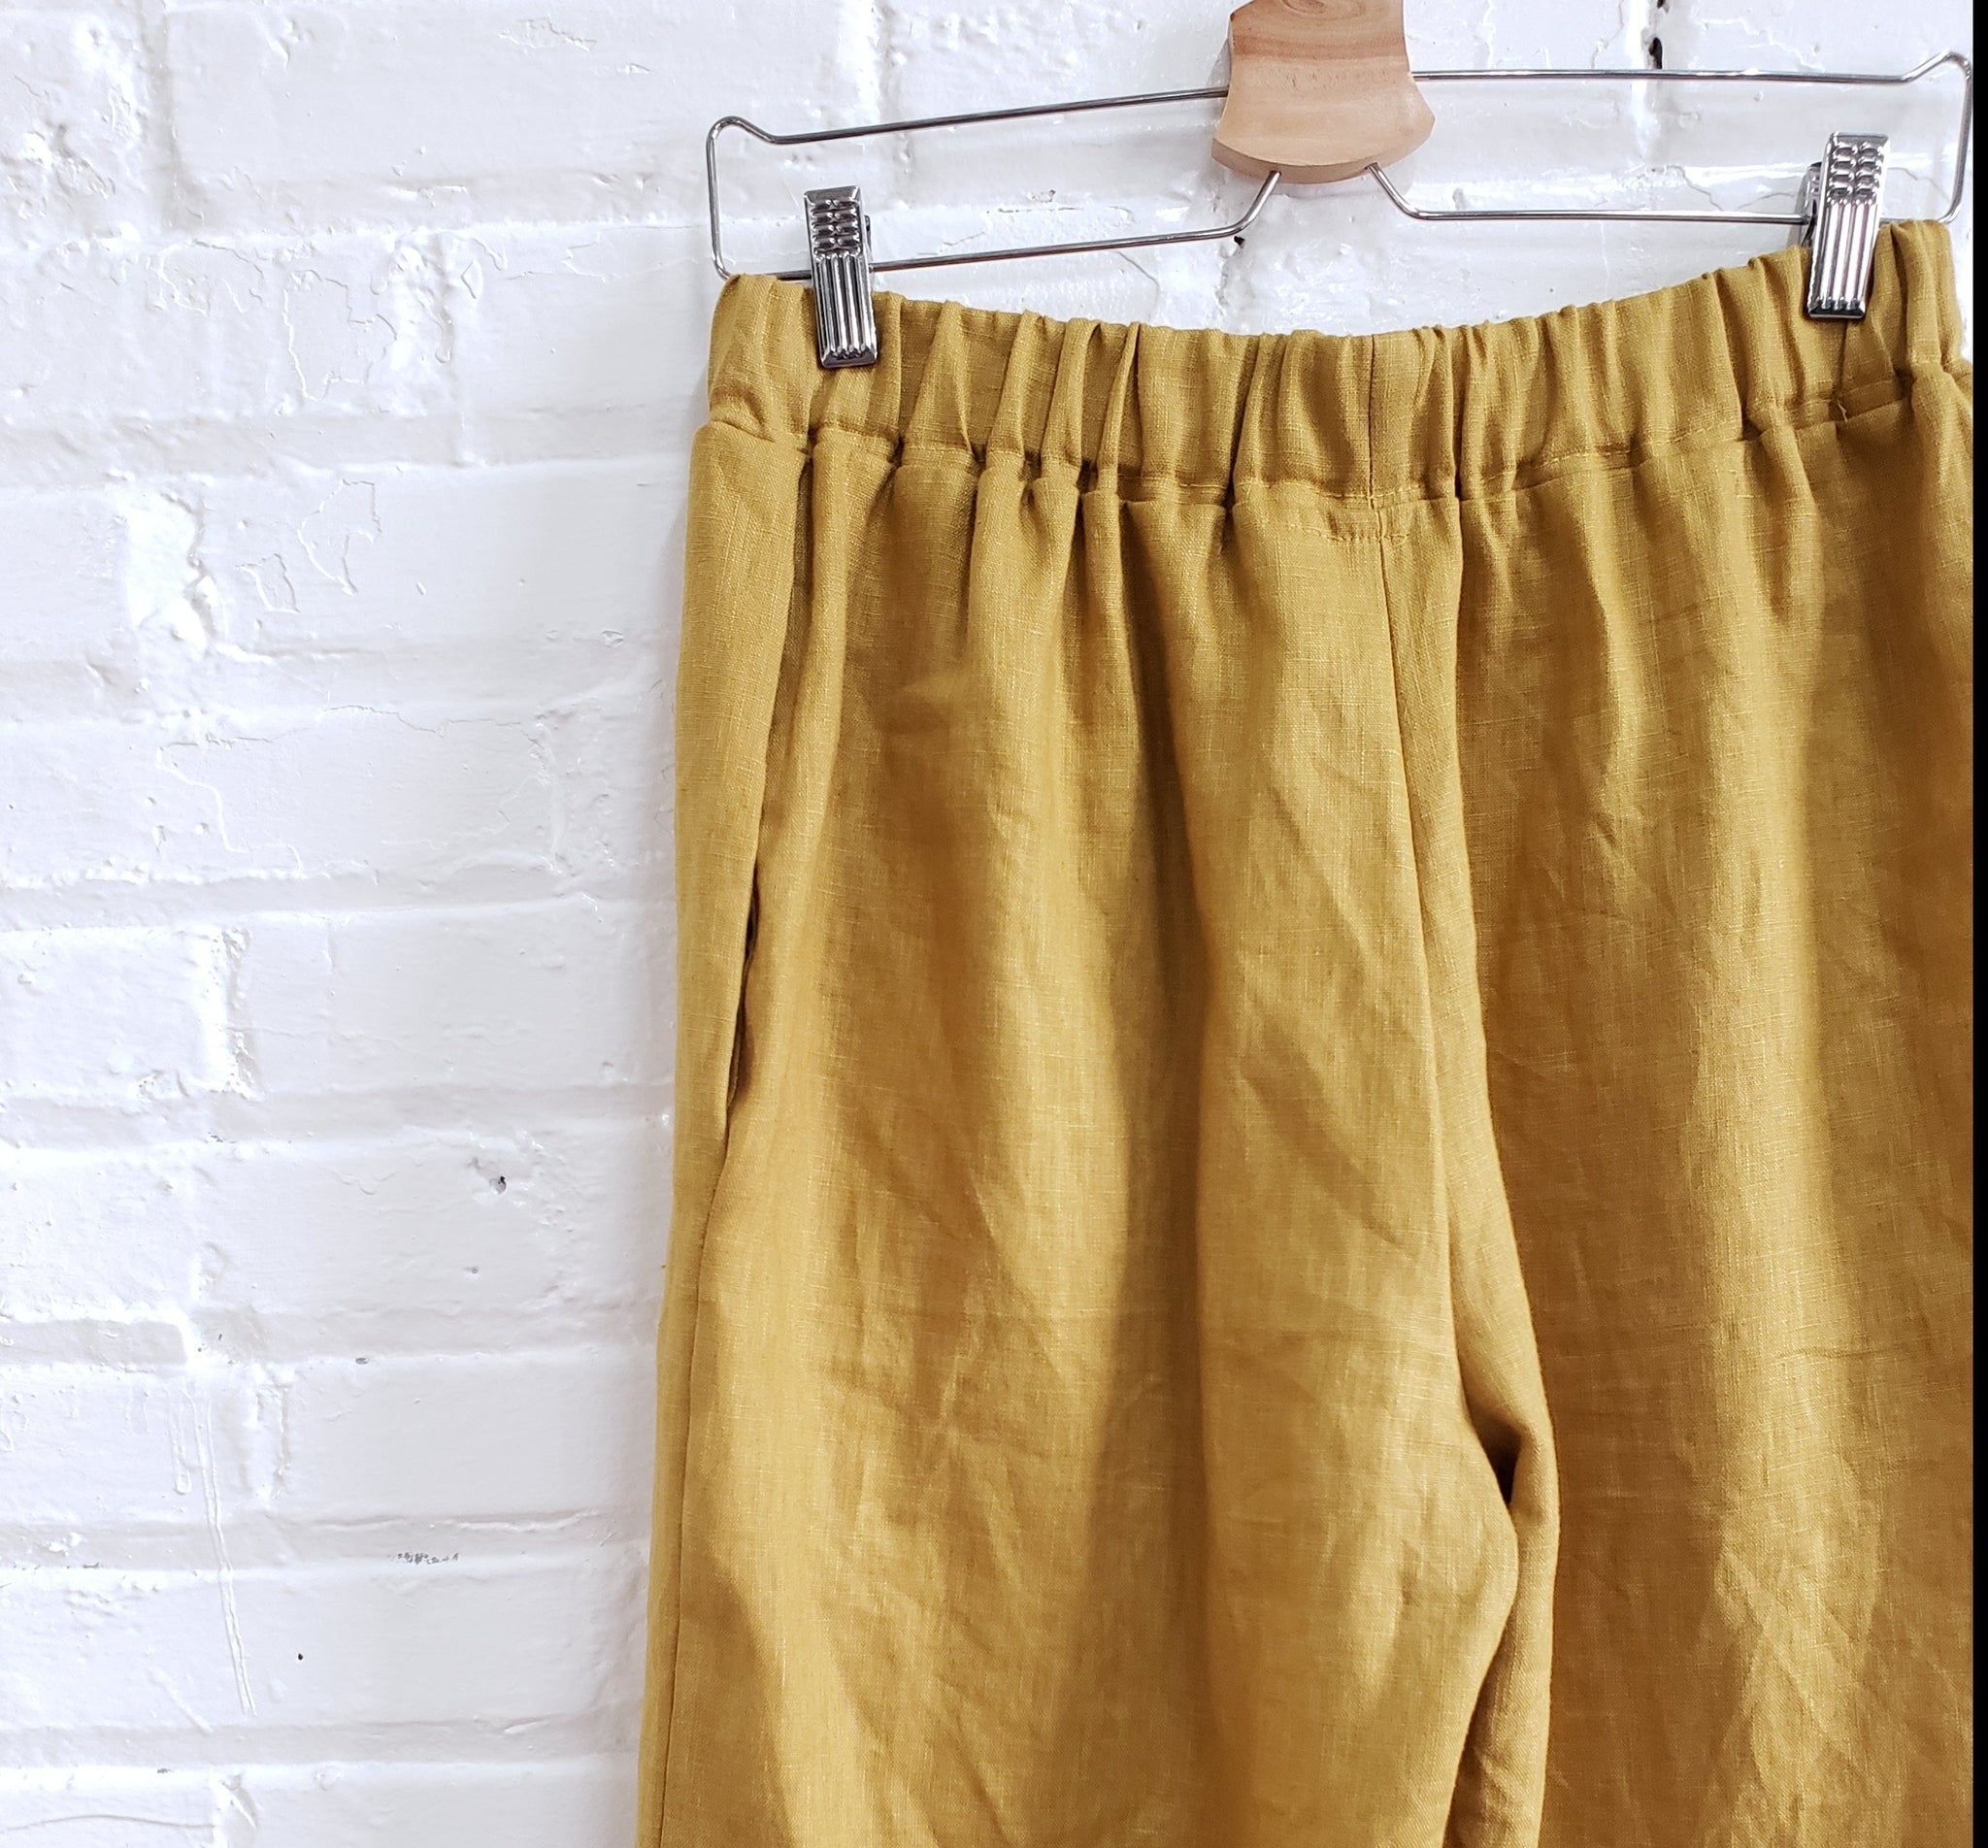 golden mustard yellow linen pants close up of waistband hanging on white brick wall